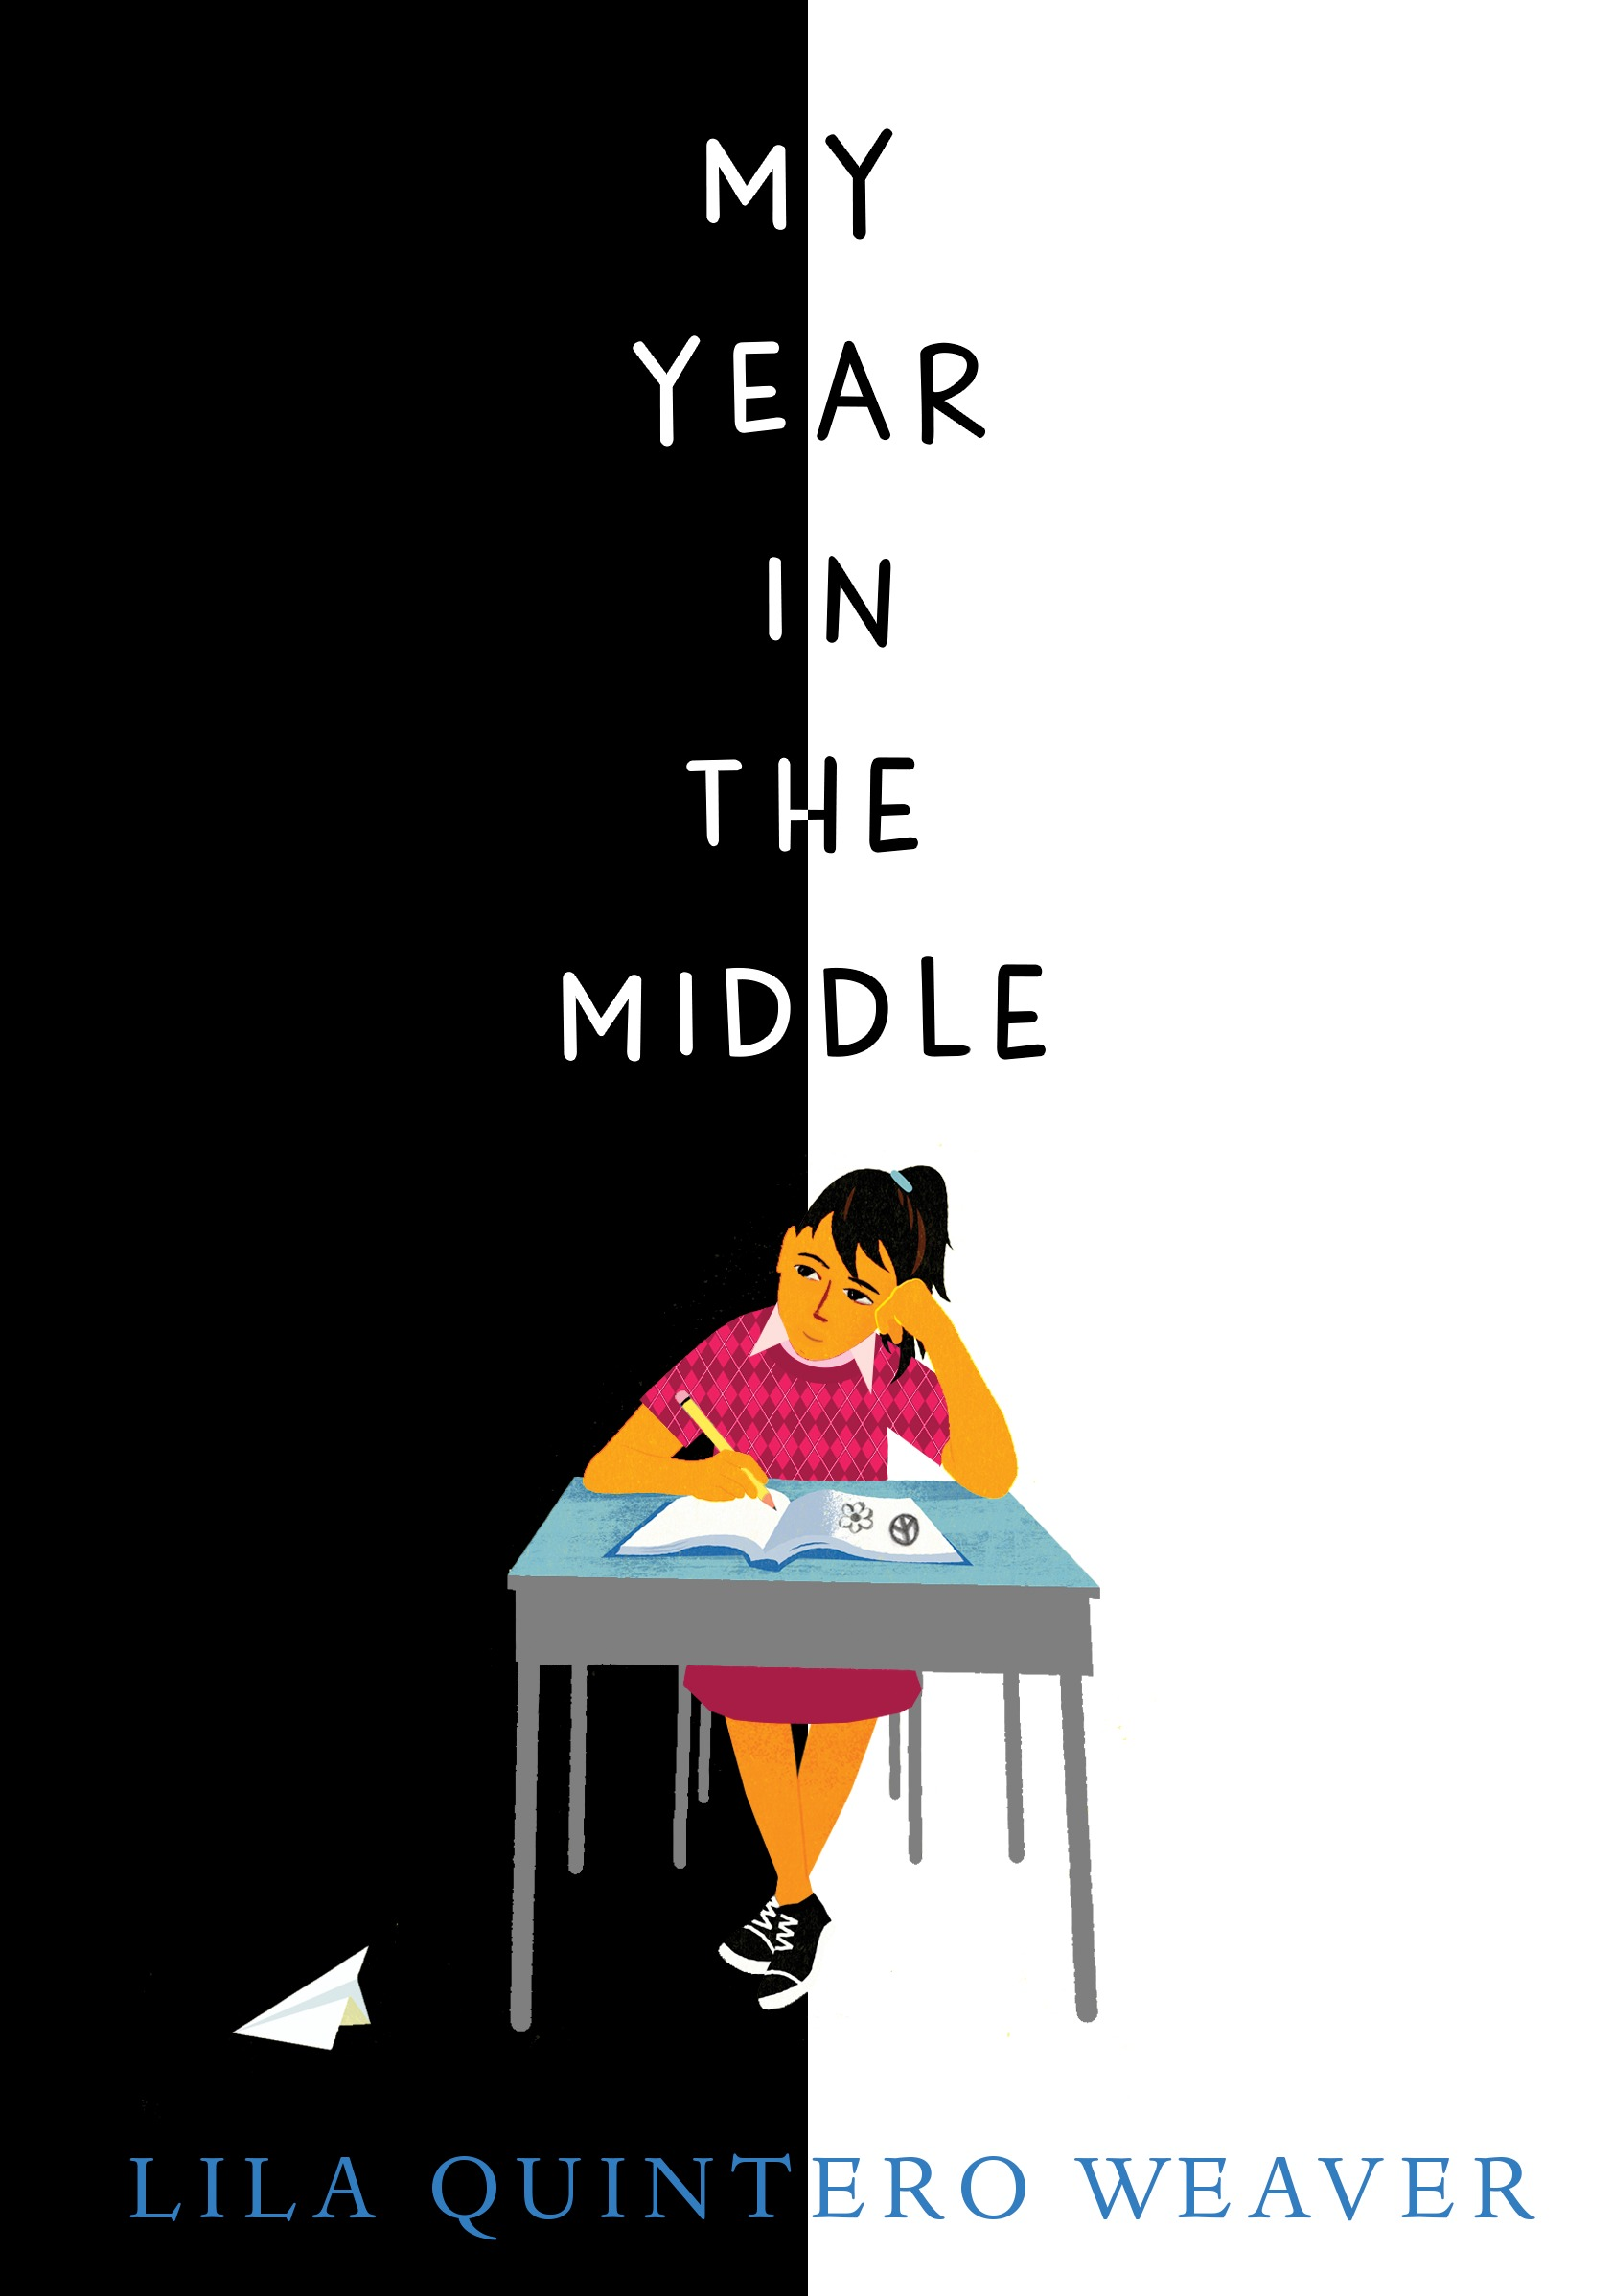 My Year in the Middle by Lila Quintero Weaver